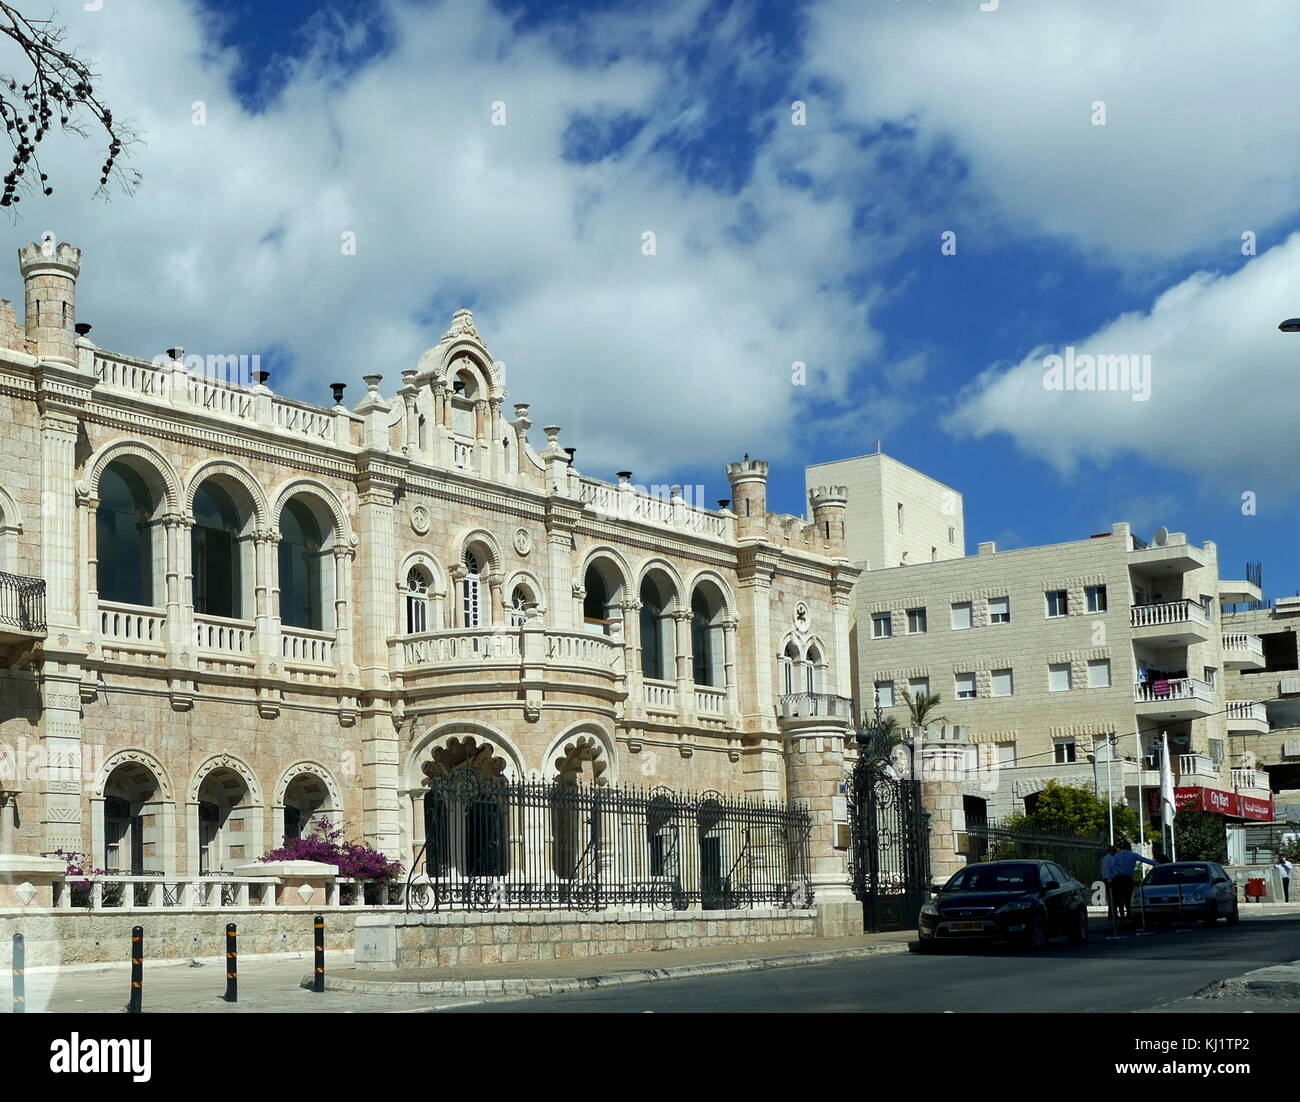 Jacir Palace Hotel, Bethlehem is the largest hotel in Bethlehem in the central West Bank in Palestine. The building's - Stock Image